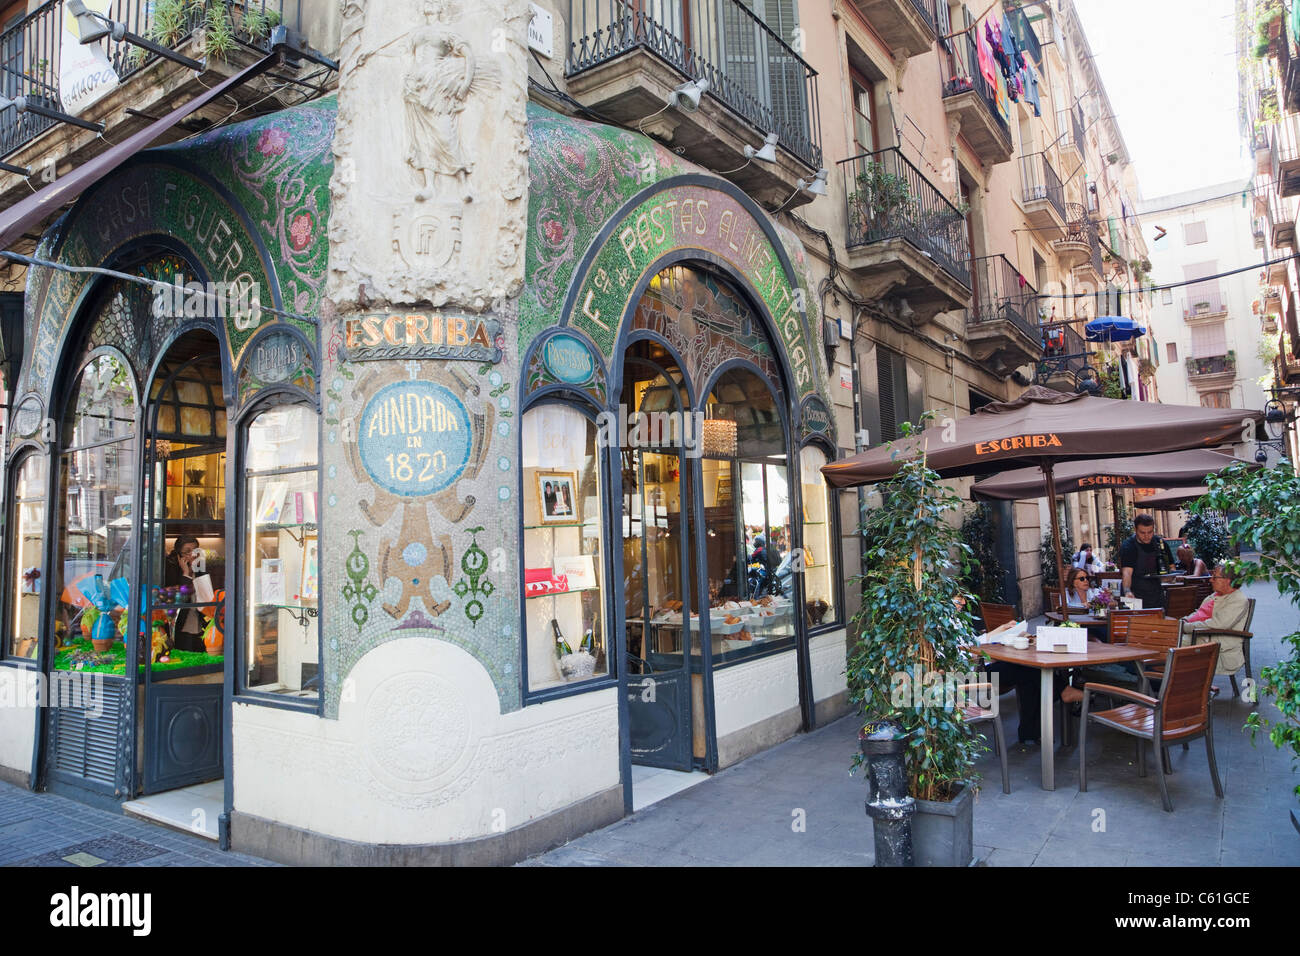 Spain, Barcelona, Las Ramblas, The Escriba Patisserie and Chocolate Shop - Stock Image